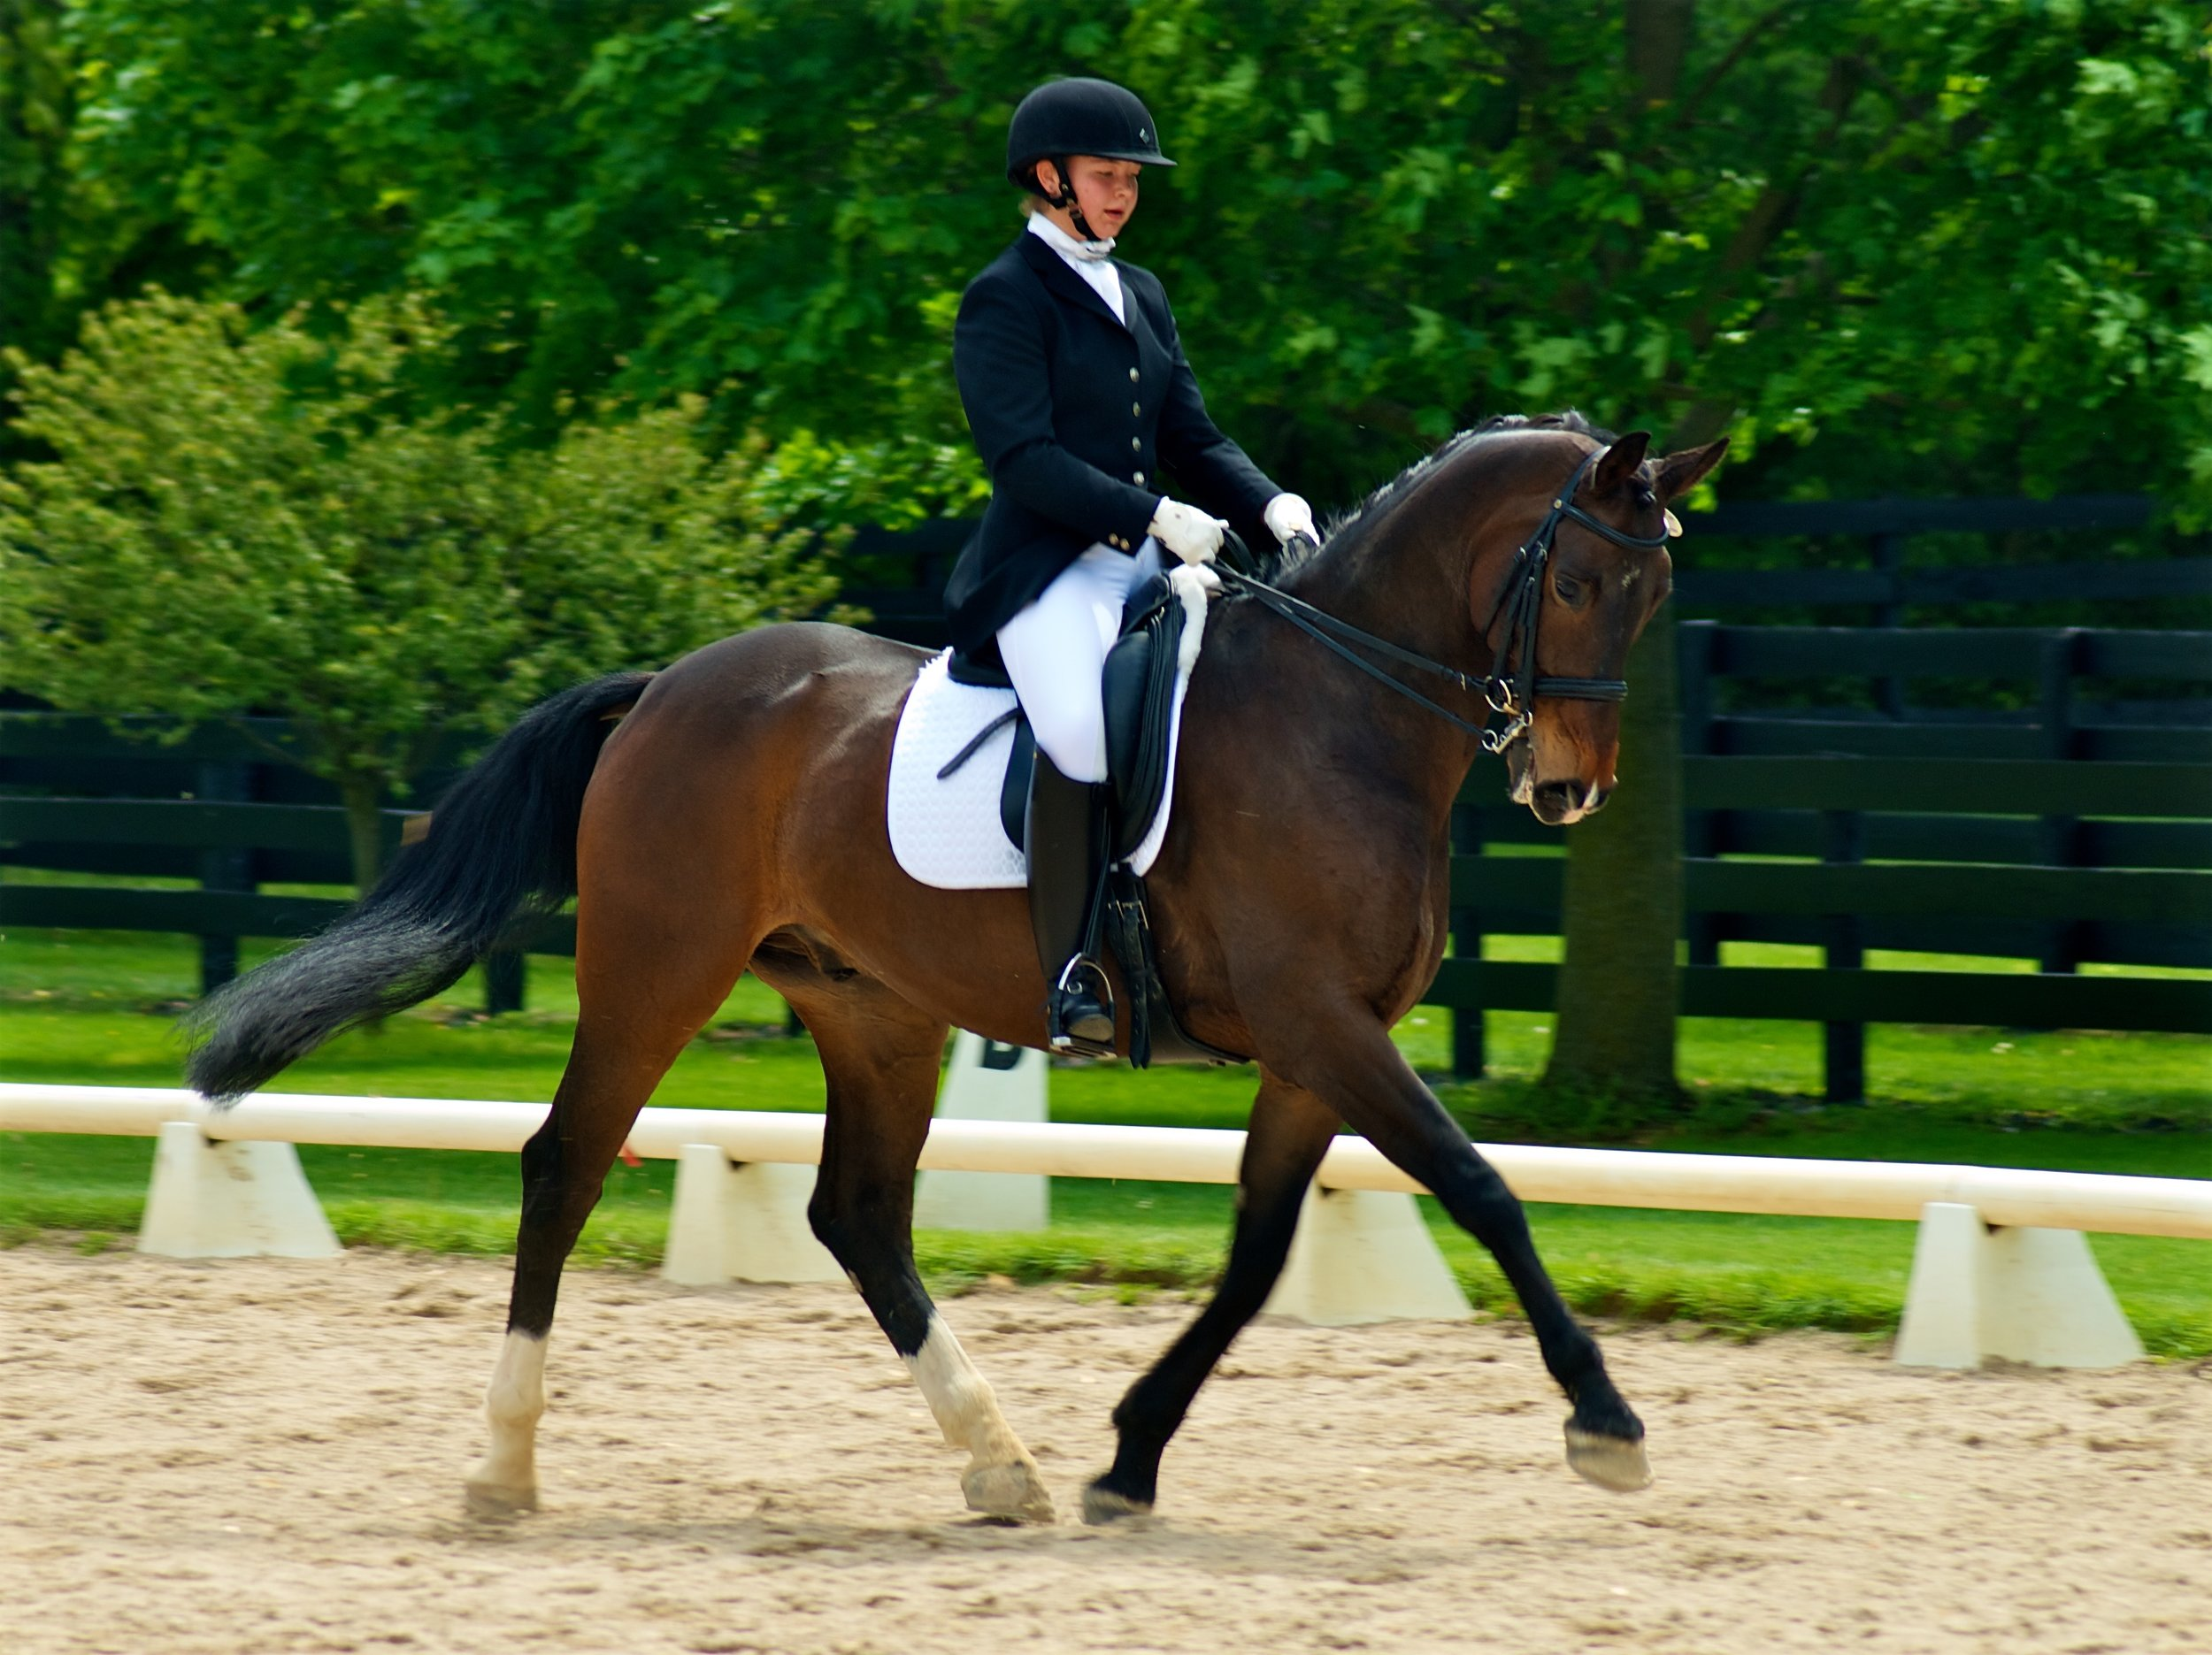 Allison Gerlt on Winspo